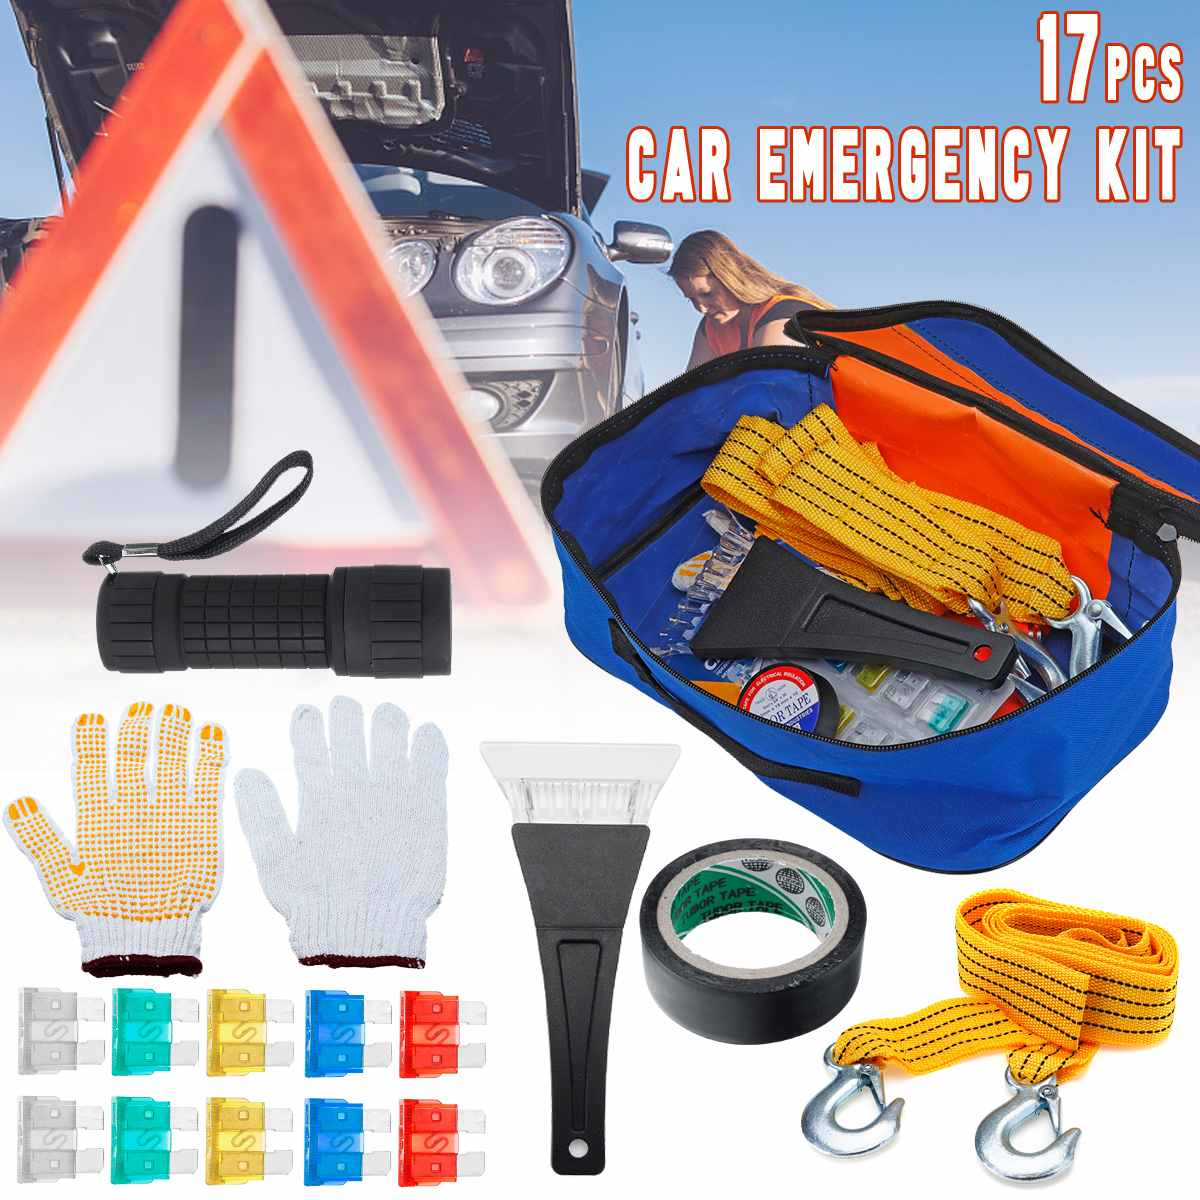 Survival-Equipment-Set First-Aid-Kit Car-Emergency-Kit Safety Universal Road-Rescue-Tool